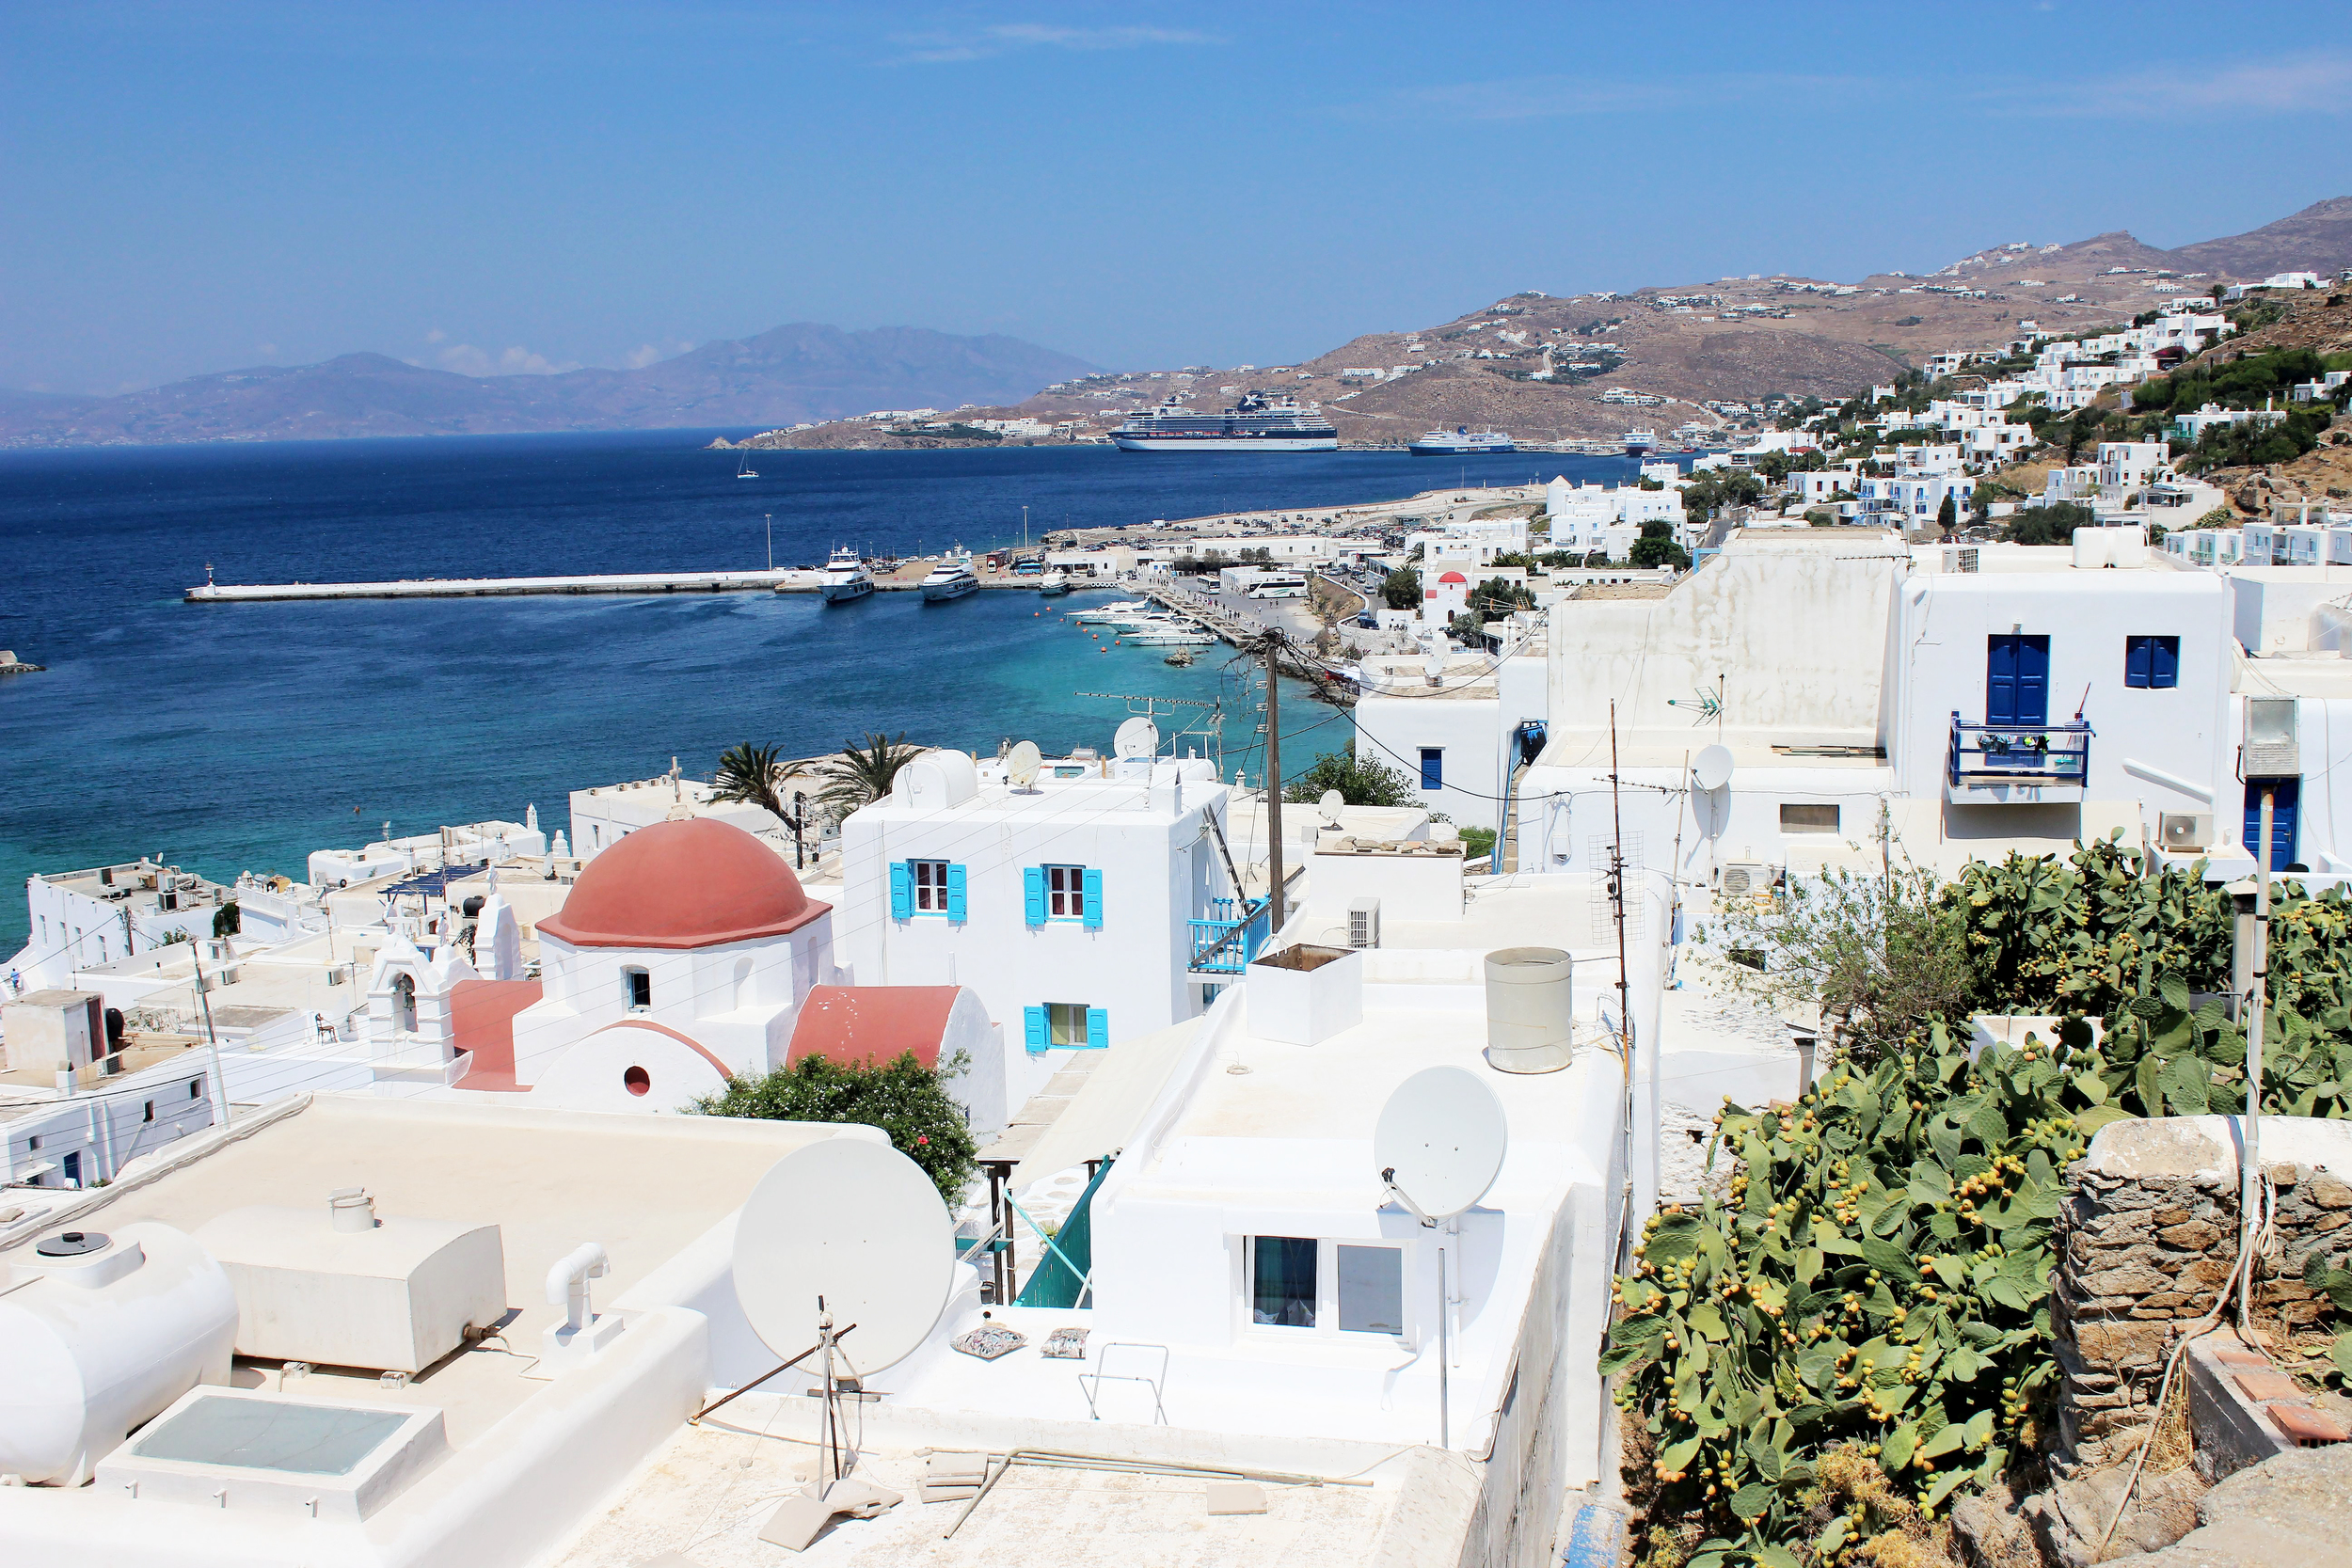 Overview of Mykonos Town, which has many excellent restaurants